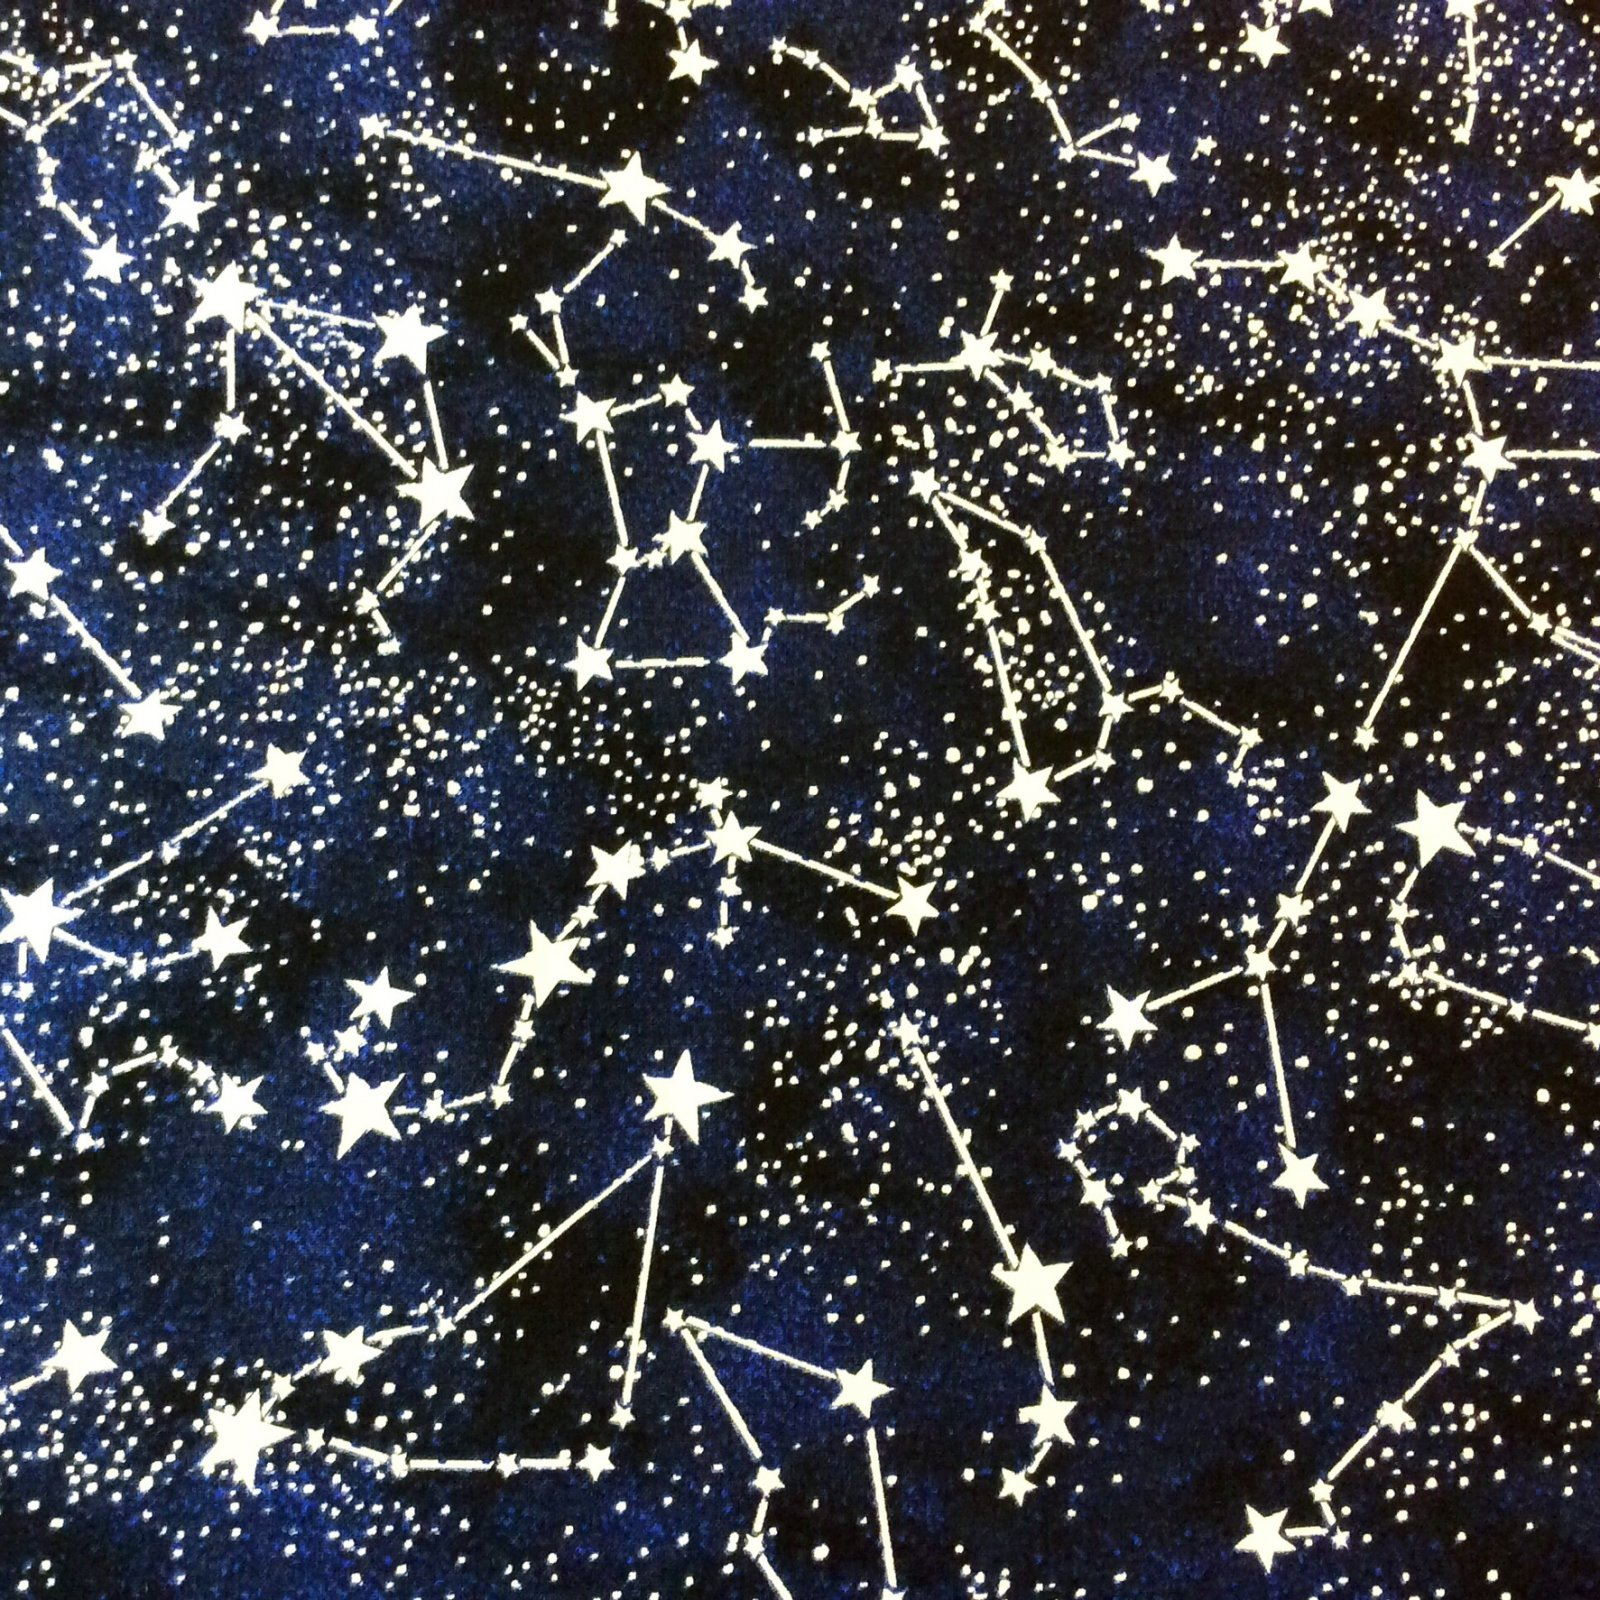 galaxy stars zodiac constellations glow in the dark space